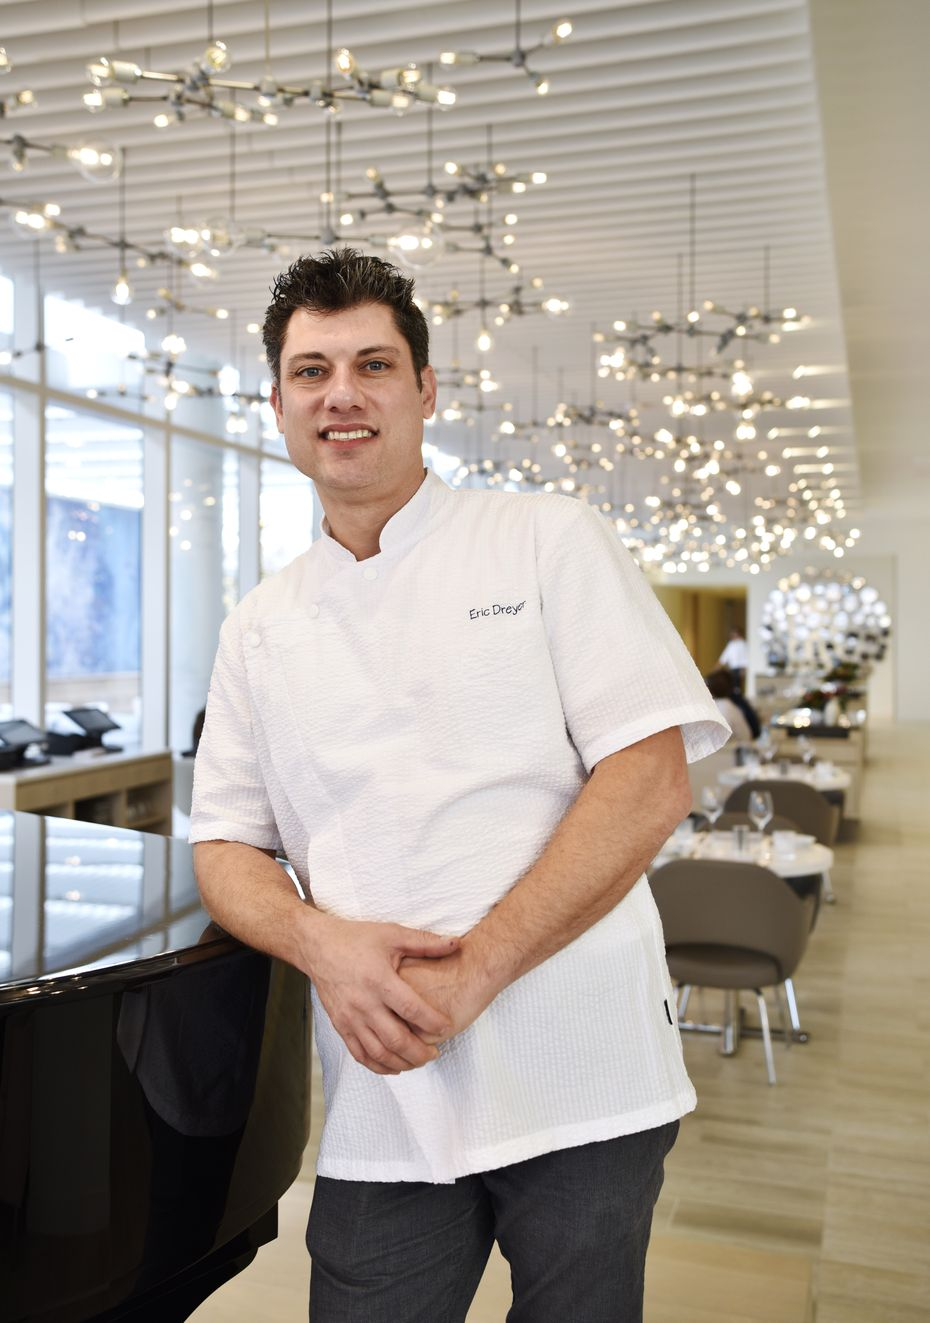 Chef Eric Dreyer worked at Ellie's, at Fearing's, and for Oprah Winfrey in the past few years. His newest job is at Monarch, a high-profile restaurant opening in downtown Dallas in 2021.